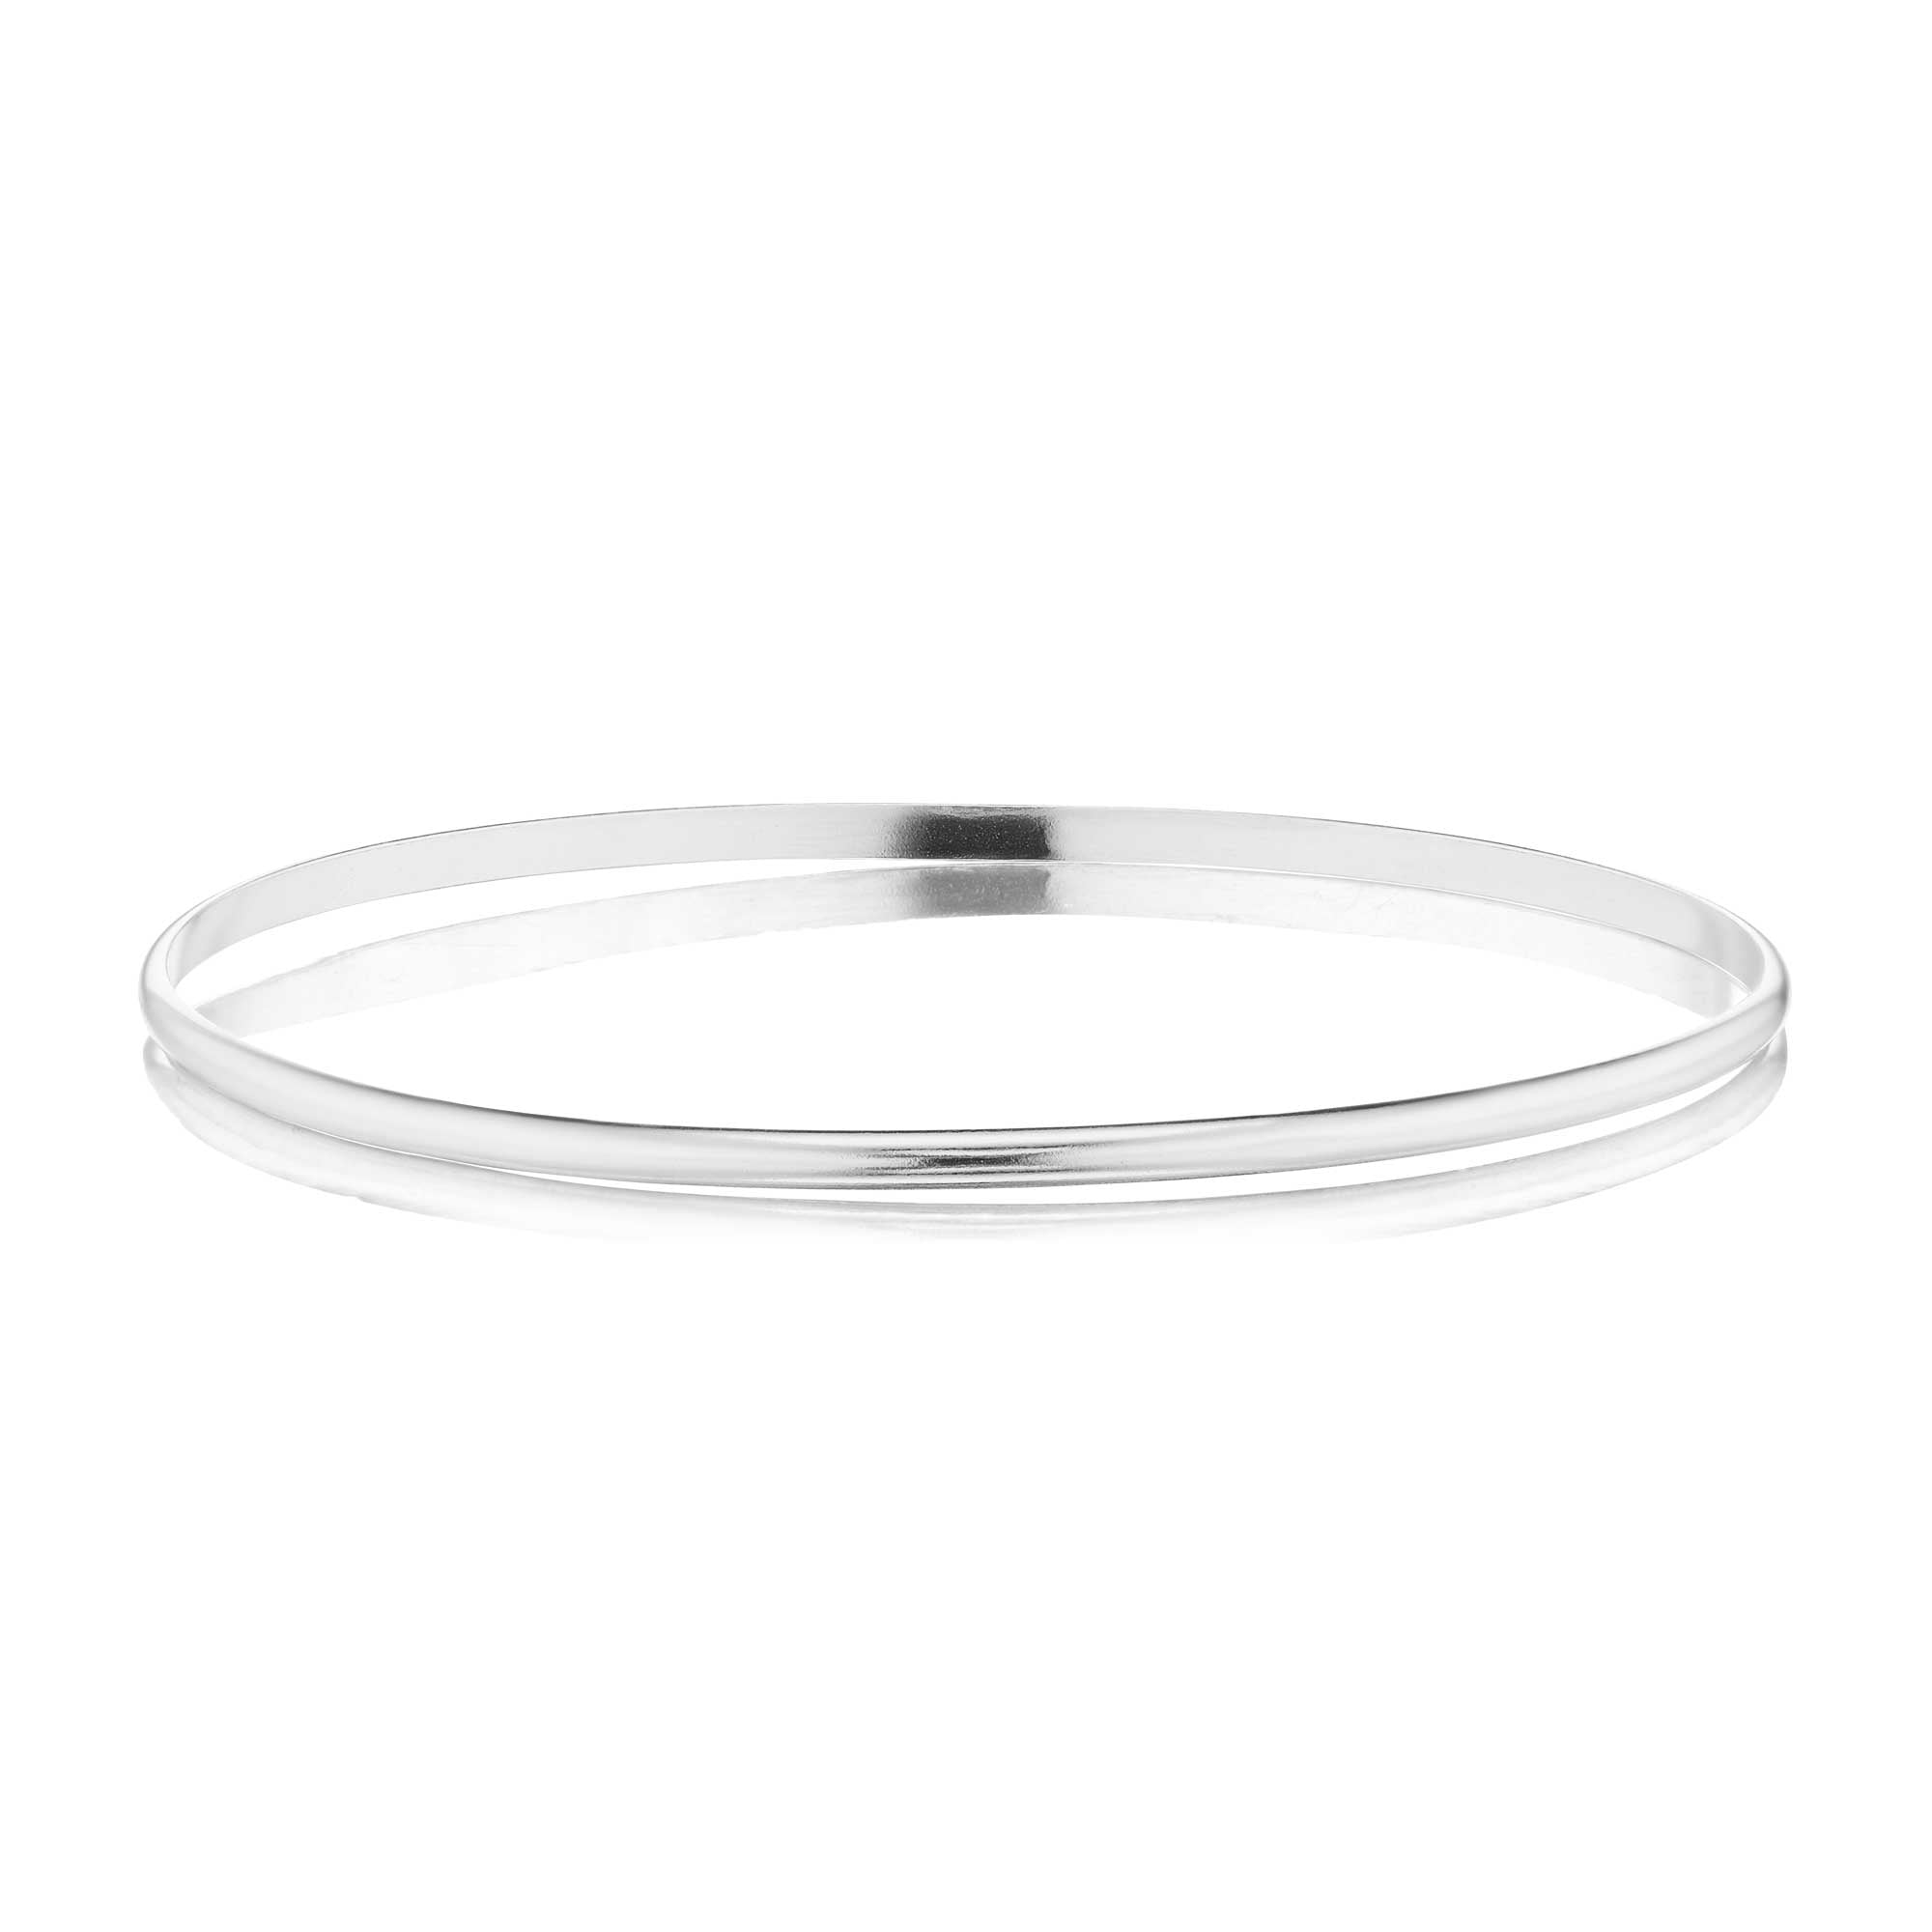 The Silver Slim Half Round Bangle